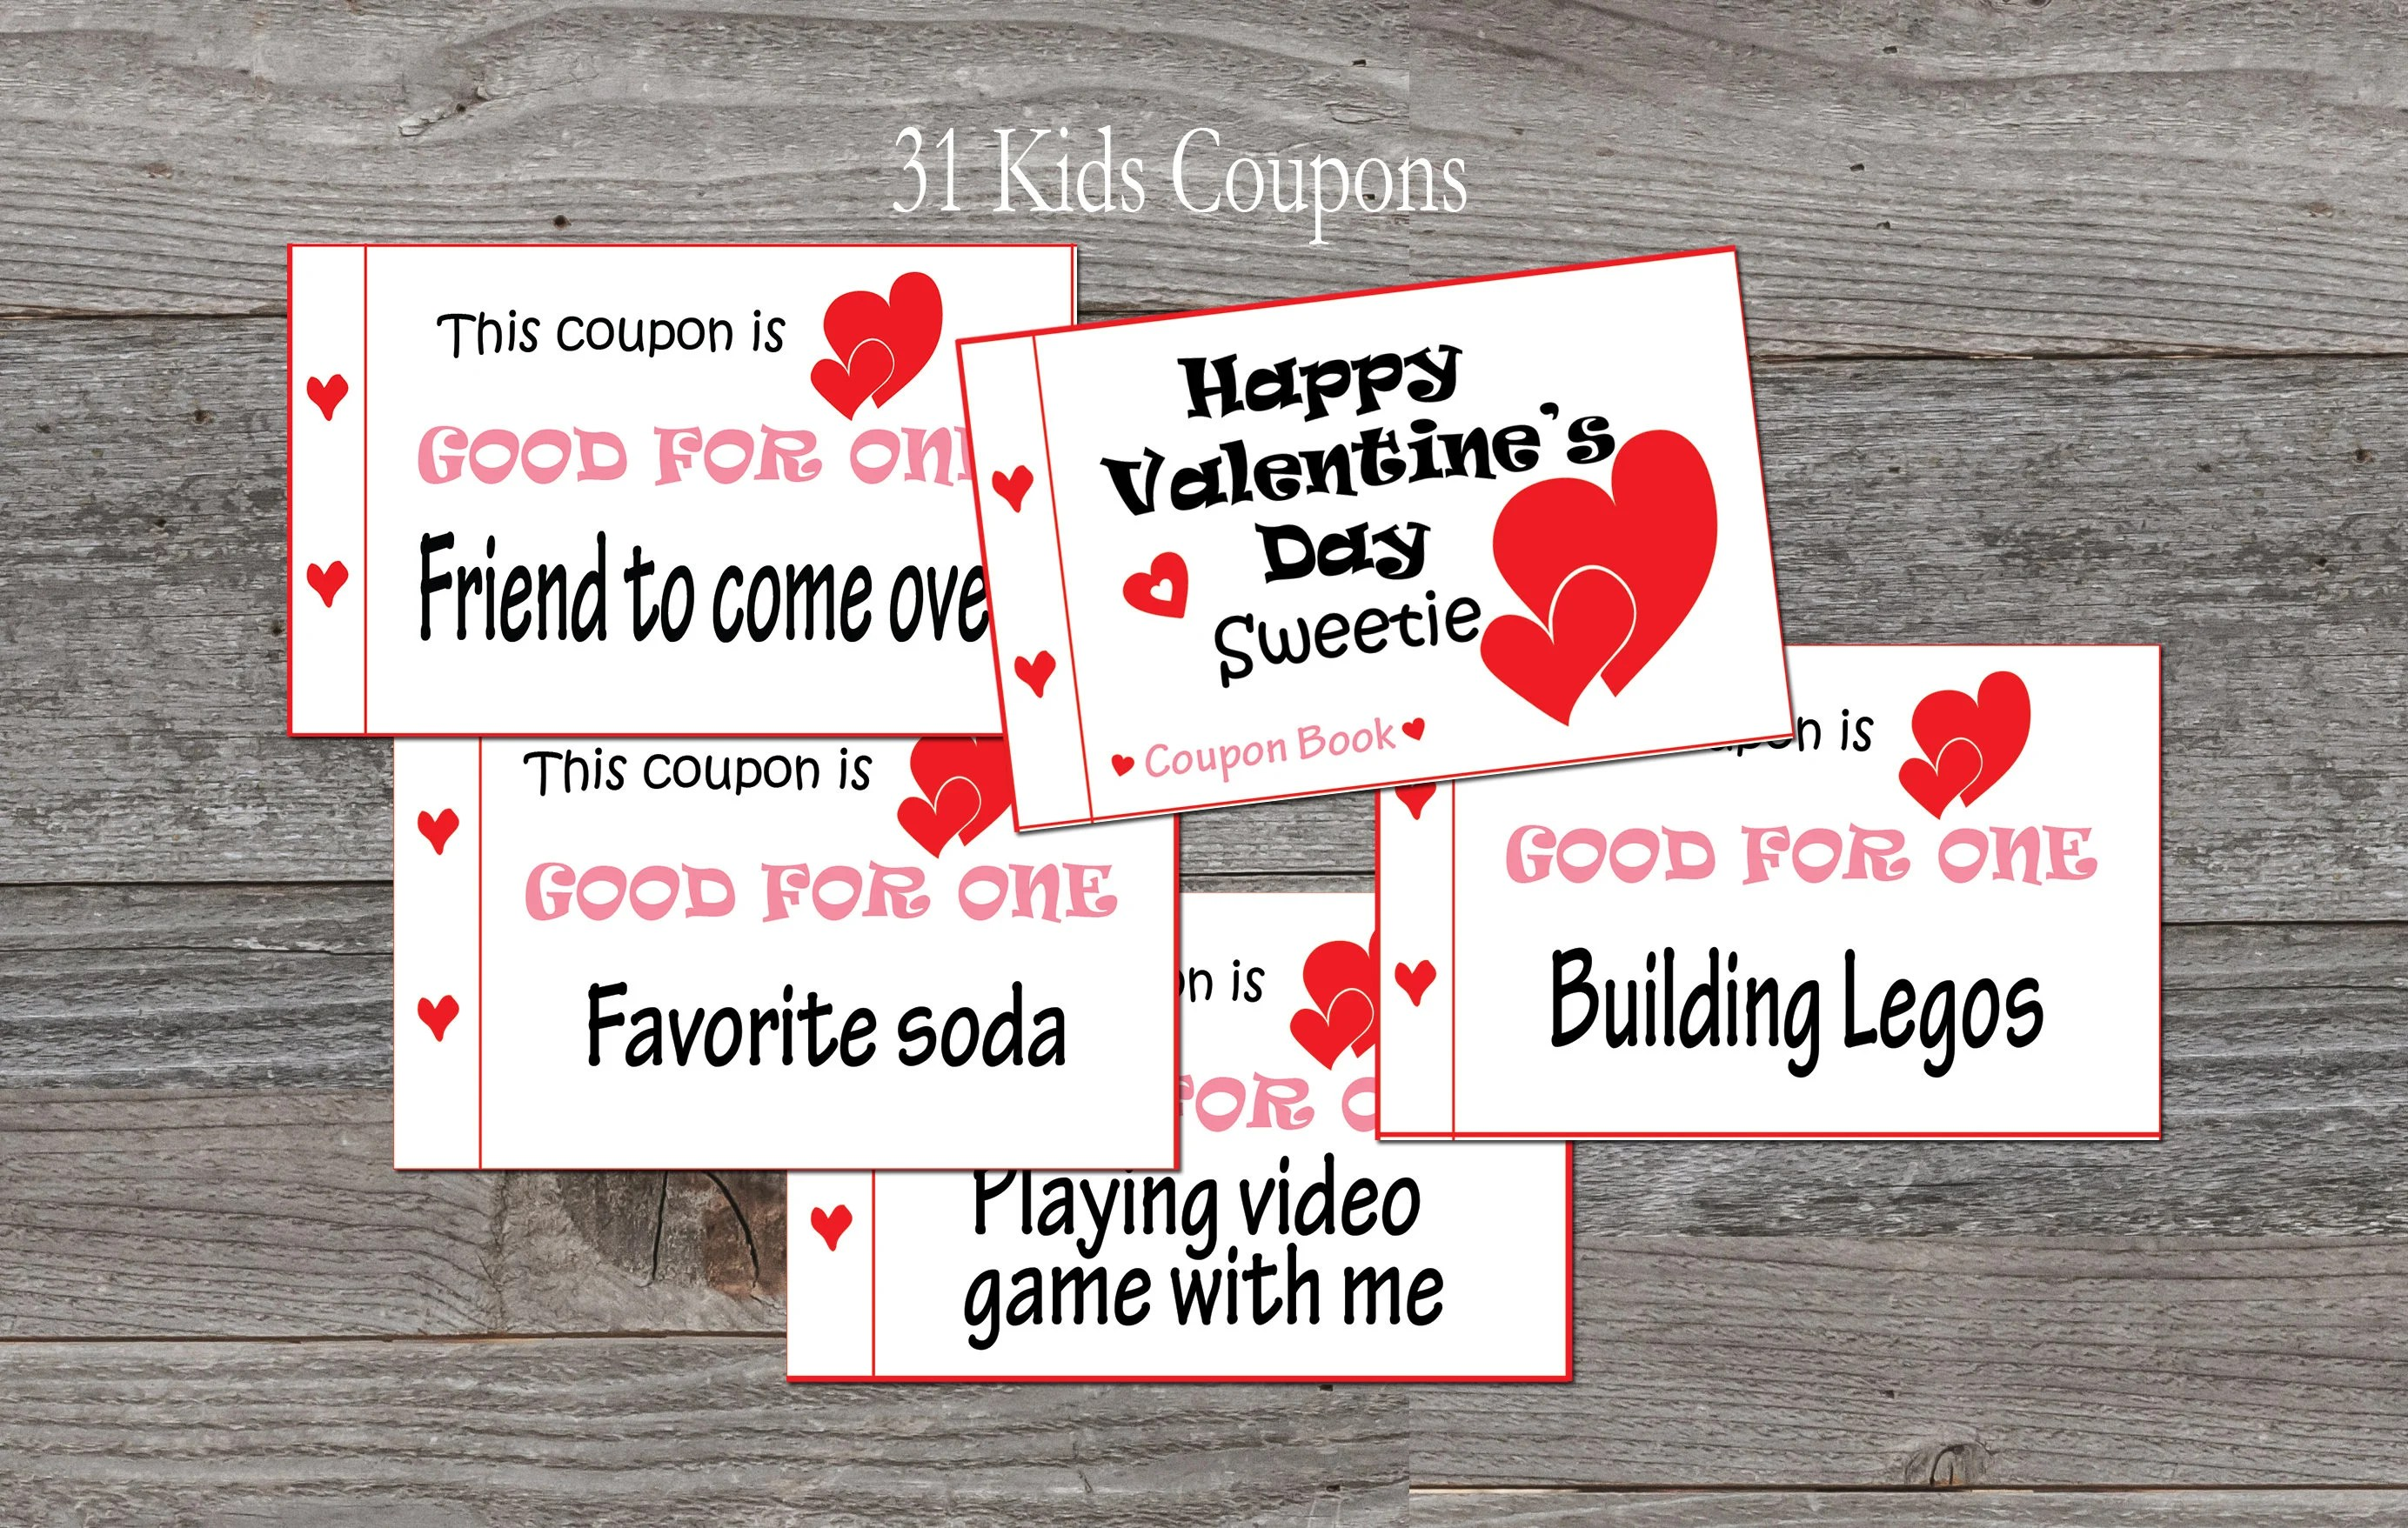 Kids Valentine\u0027s Day coupon book for kids 31 coupons Etsy